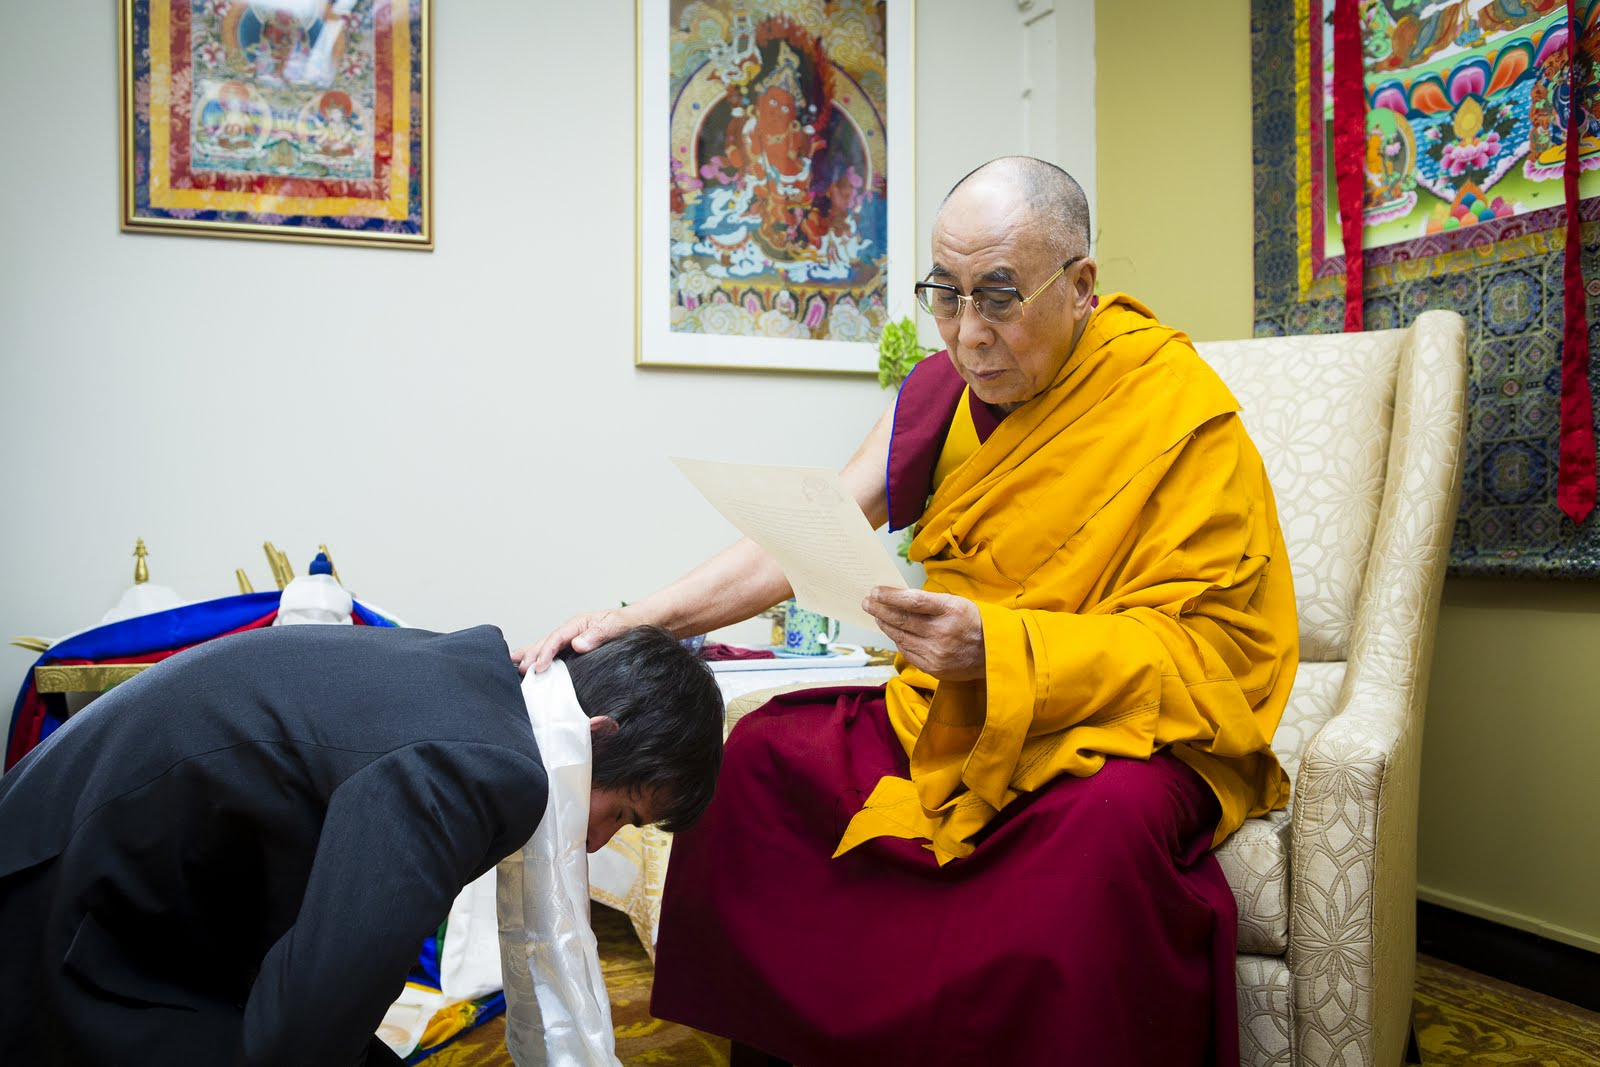 Ösel offering body, speech, and mind mandala to His Holiness the Dalai Lama. His Holiness is reading a letter from Lama Zopa Rinpoche. Photo by Leah Nash.